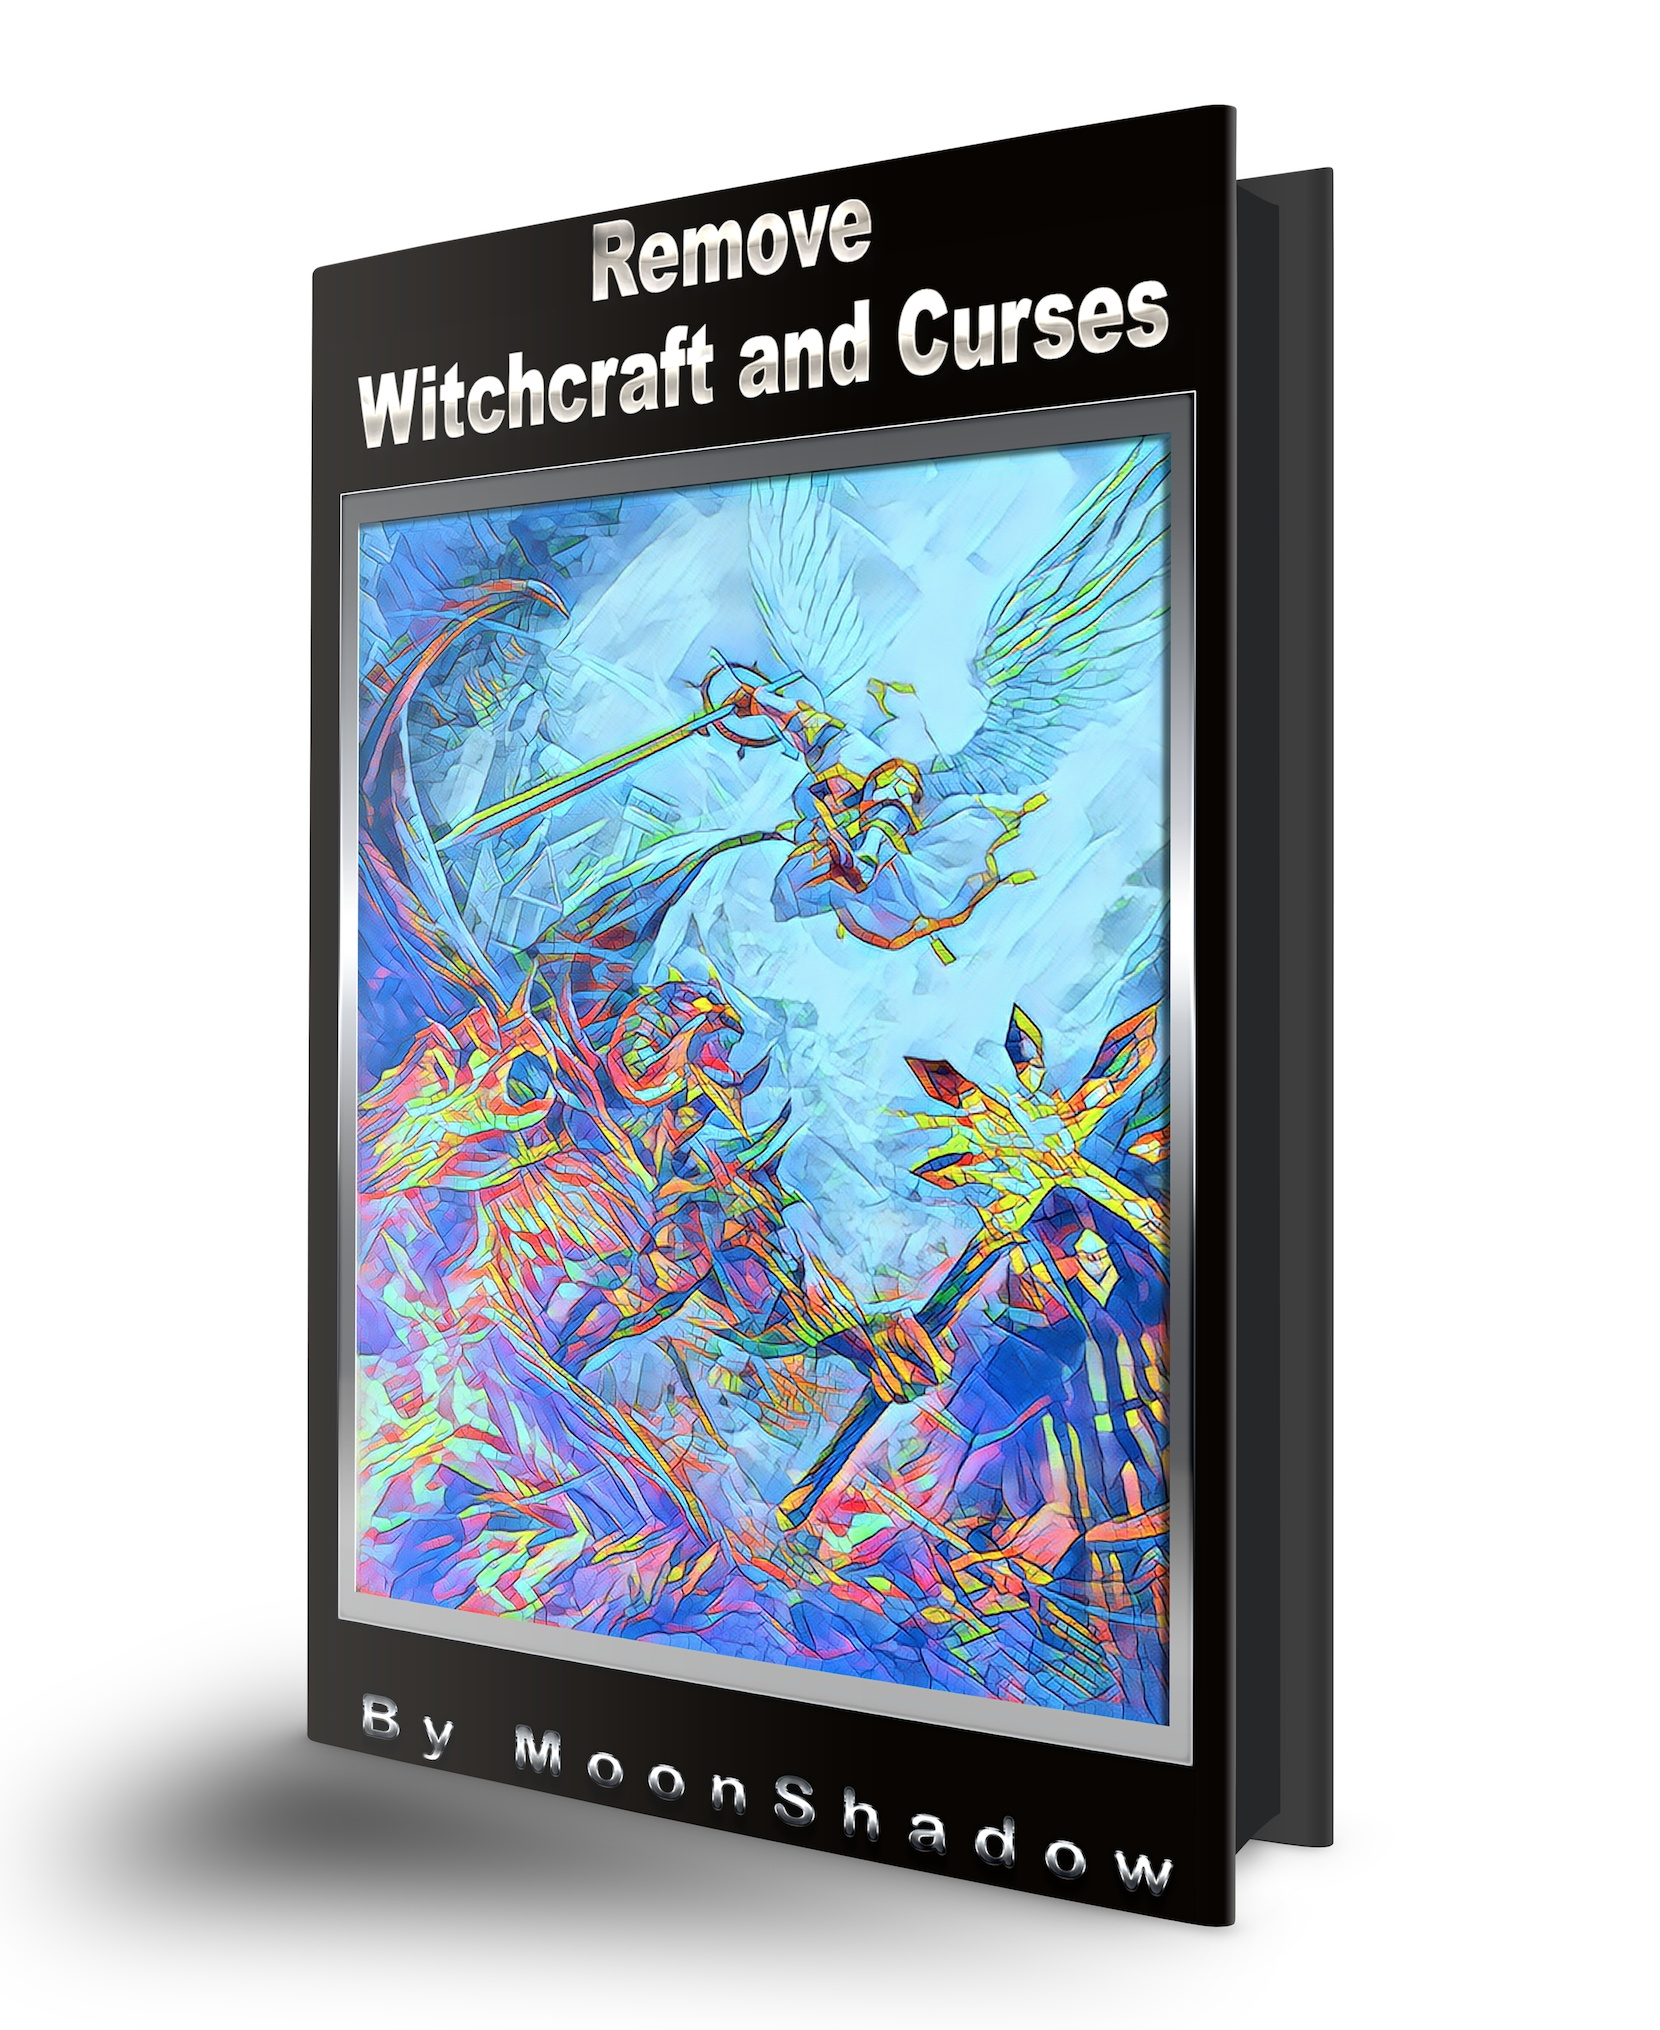 Remove All Witchcraft and Curses